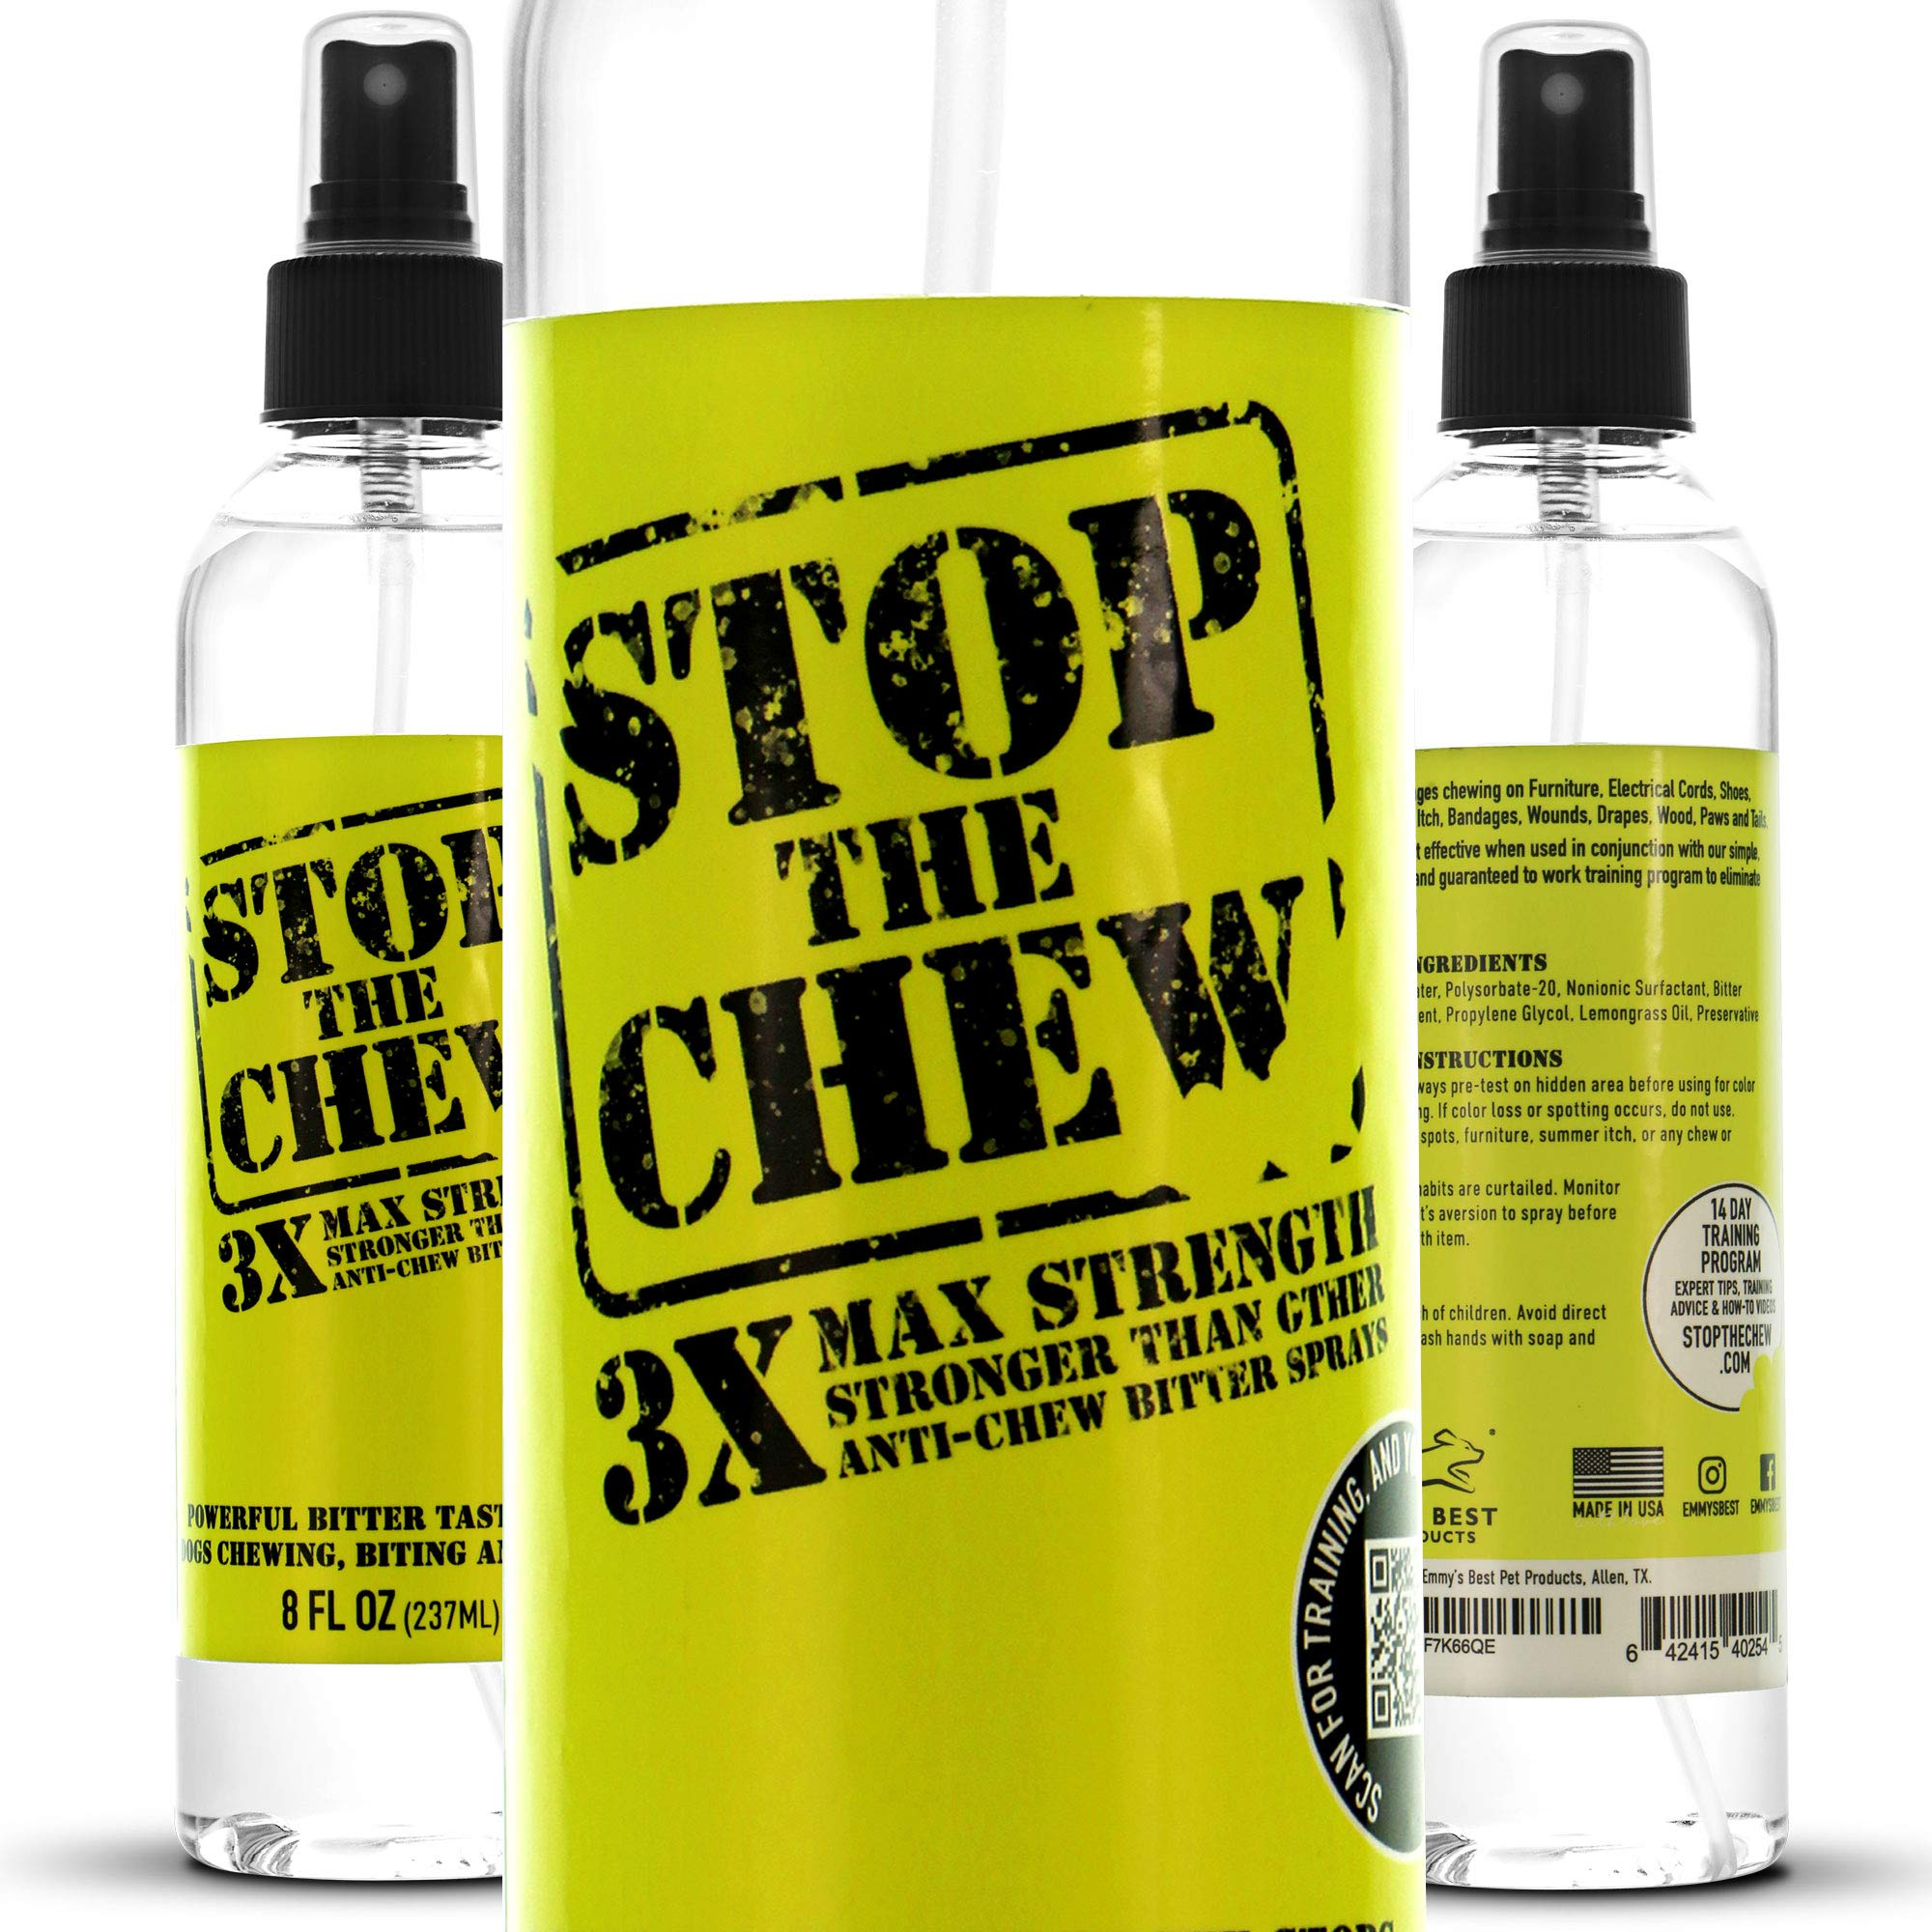 Emmy's Best Stop The Chew 3X Strength Anti Chew Bitter Spray Deterrent for Dogs & Puppies - Alcohol Free - Most Powerful Bitter Deterrent - 8oz by Emmy's Best